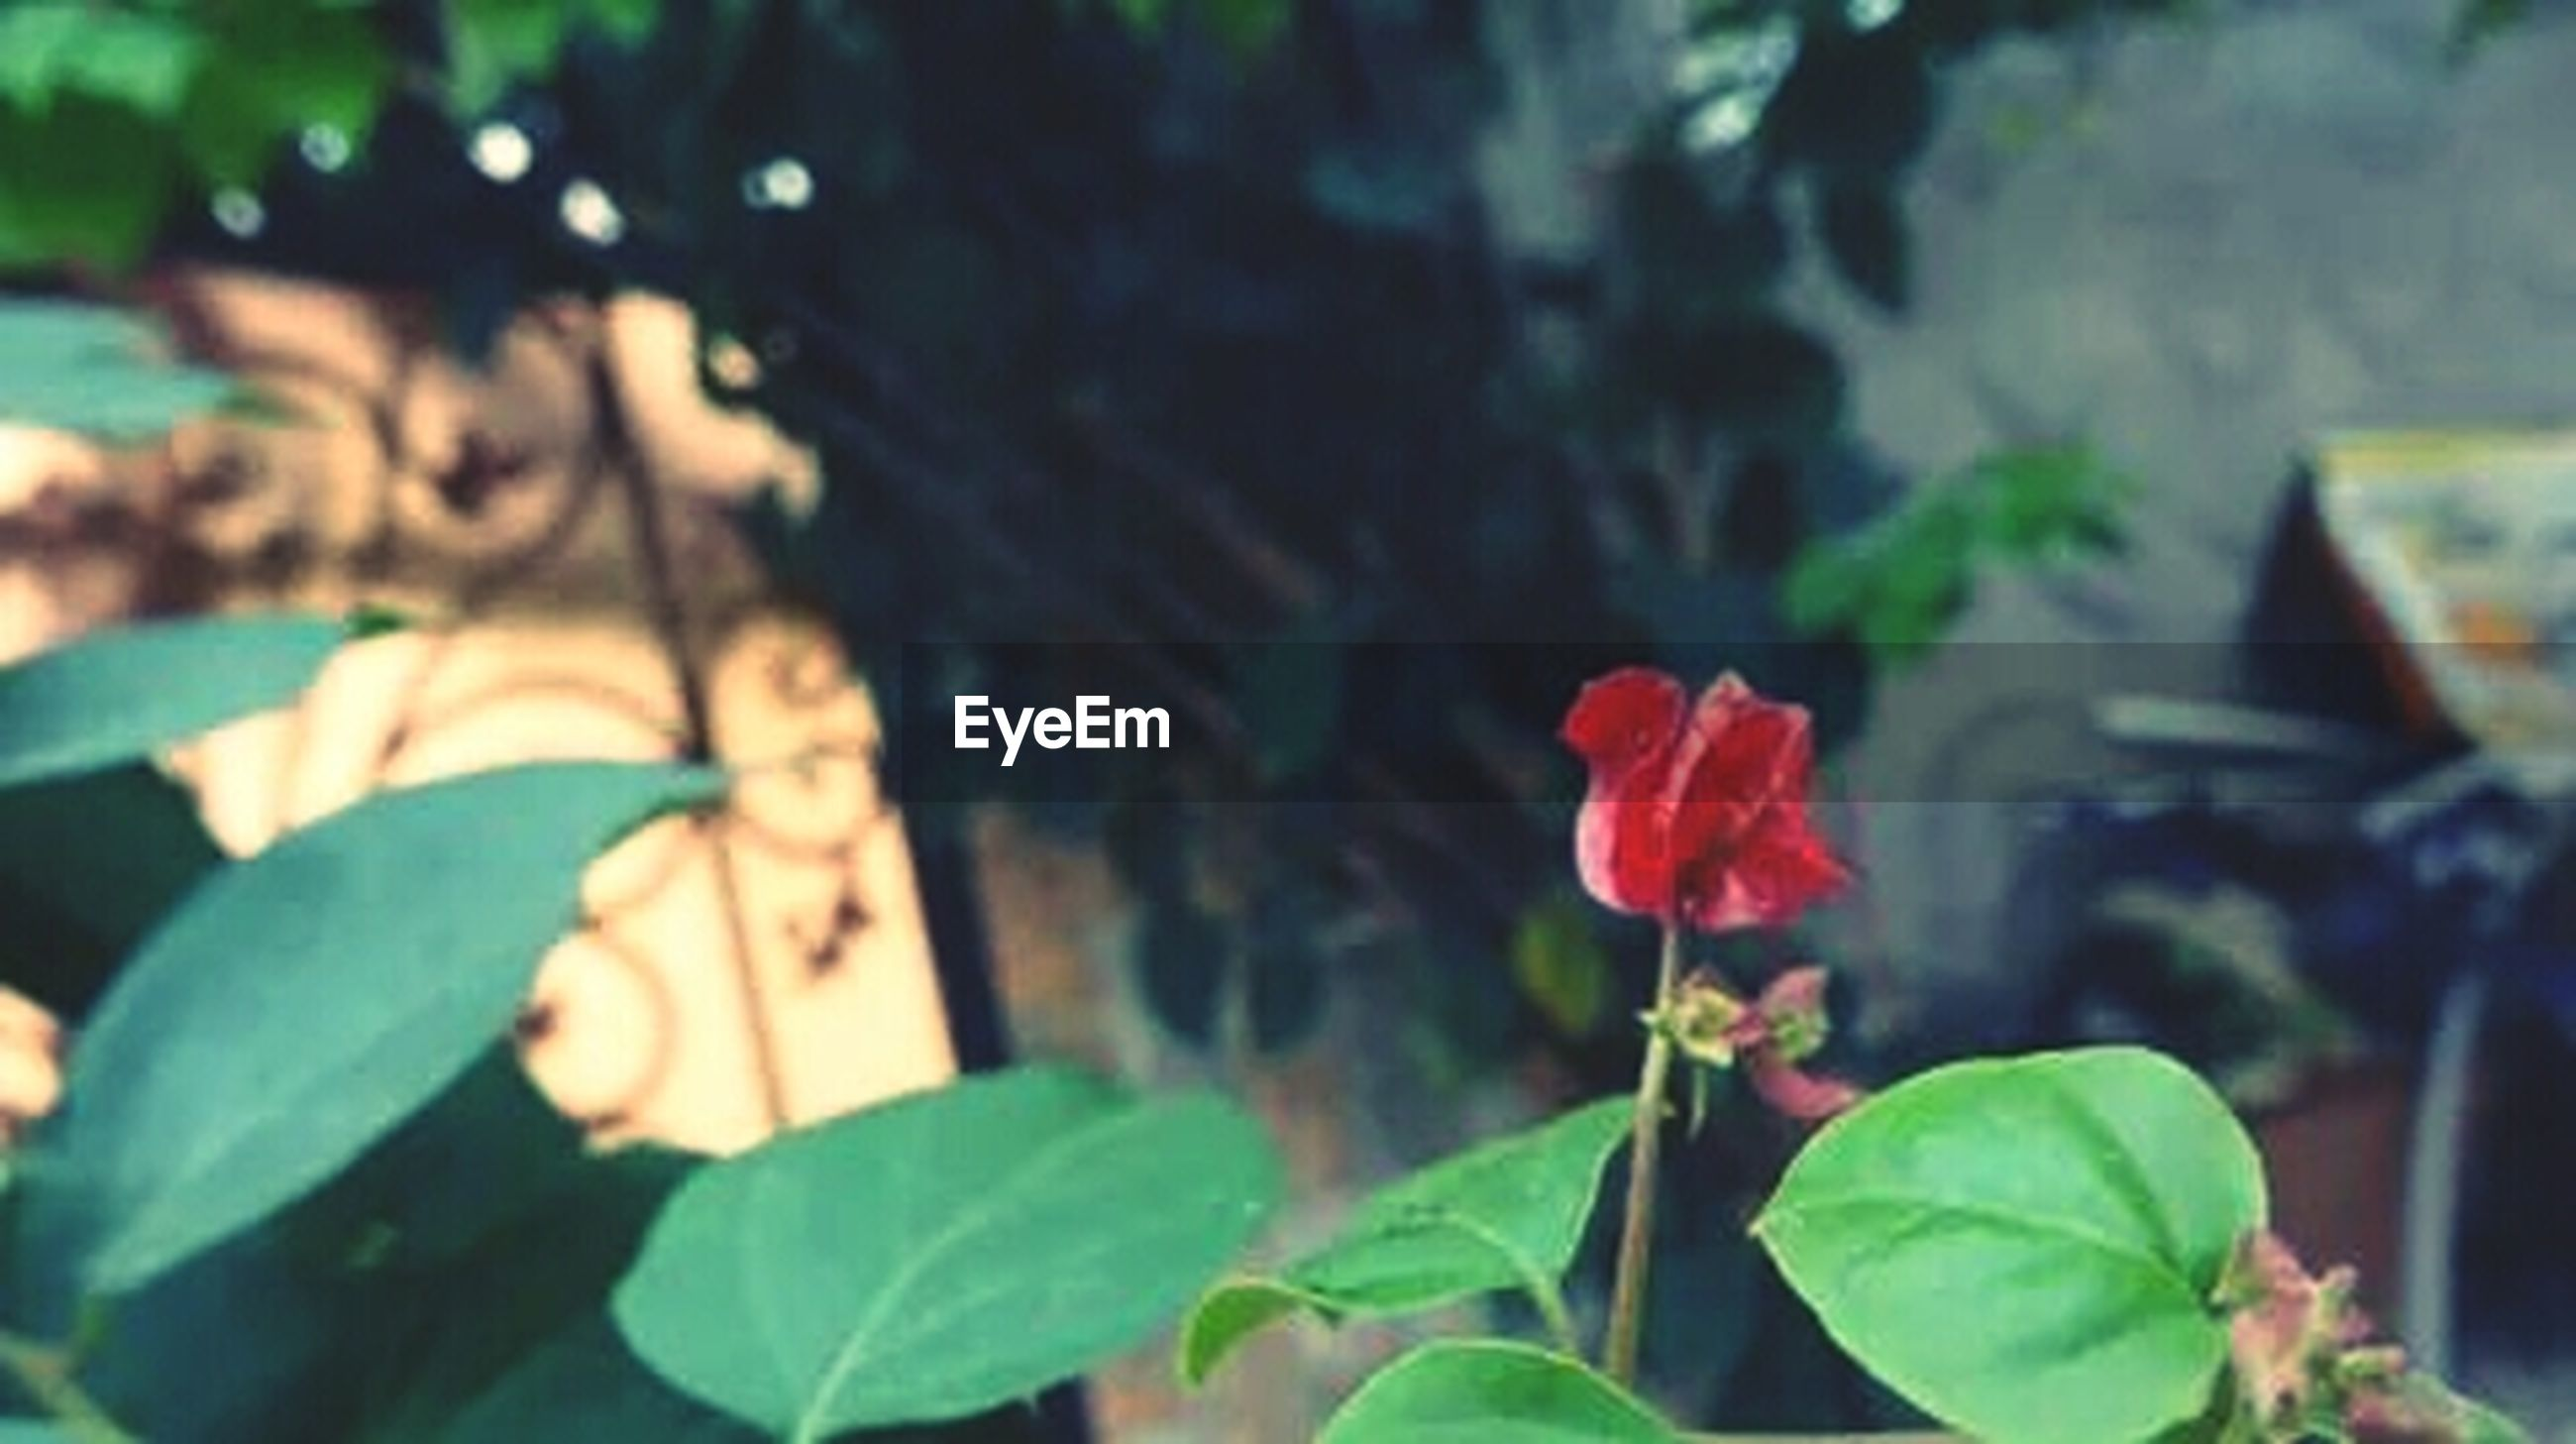 flower, focus on foreground, petal, plant, leaf, growth, freshness, close-up, fragility, flower head, blooming, nature, day, red, outdoors, selective focus, beauty in nature, park - man made space